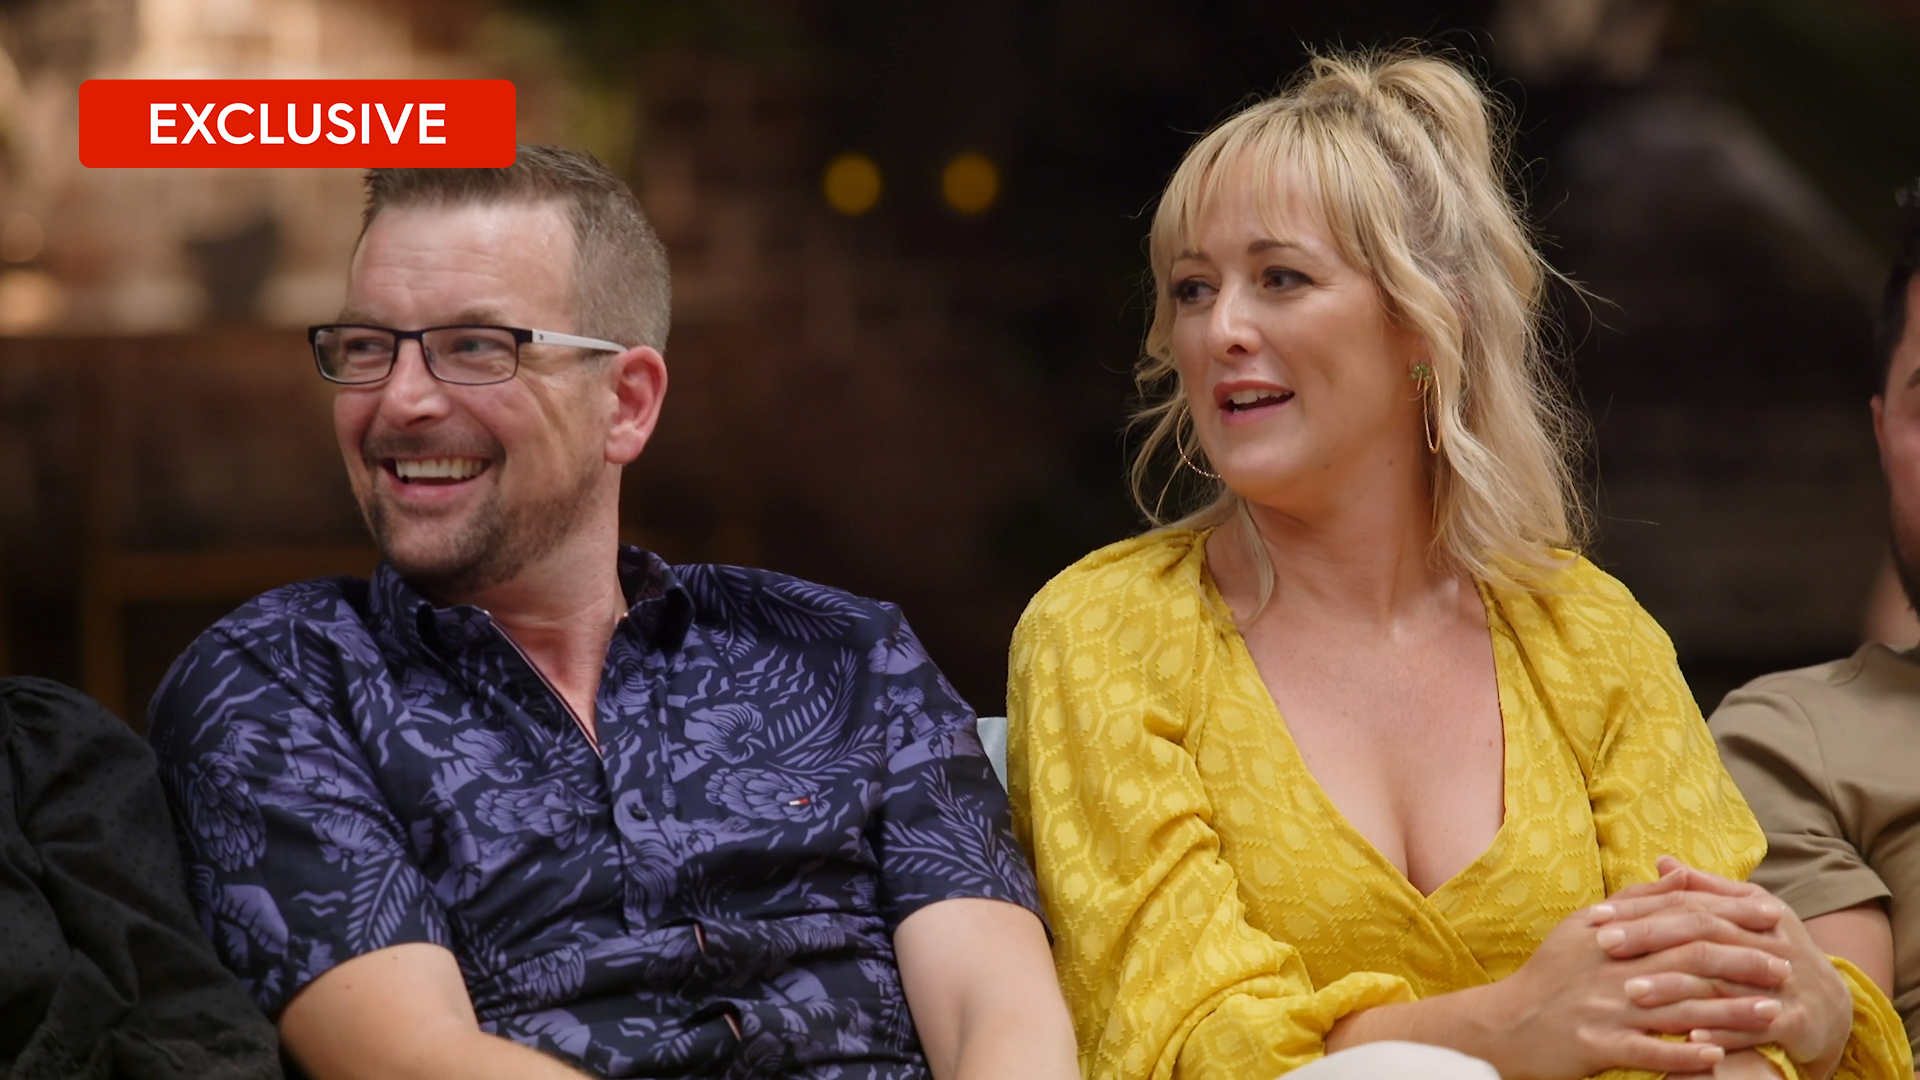 Exclusive: Beth and Russell's unseen moment at the Reunion